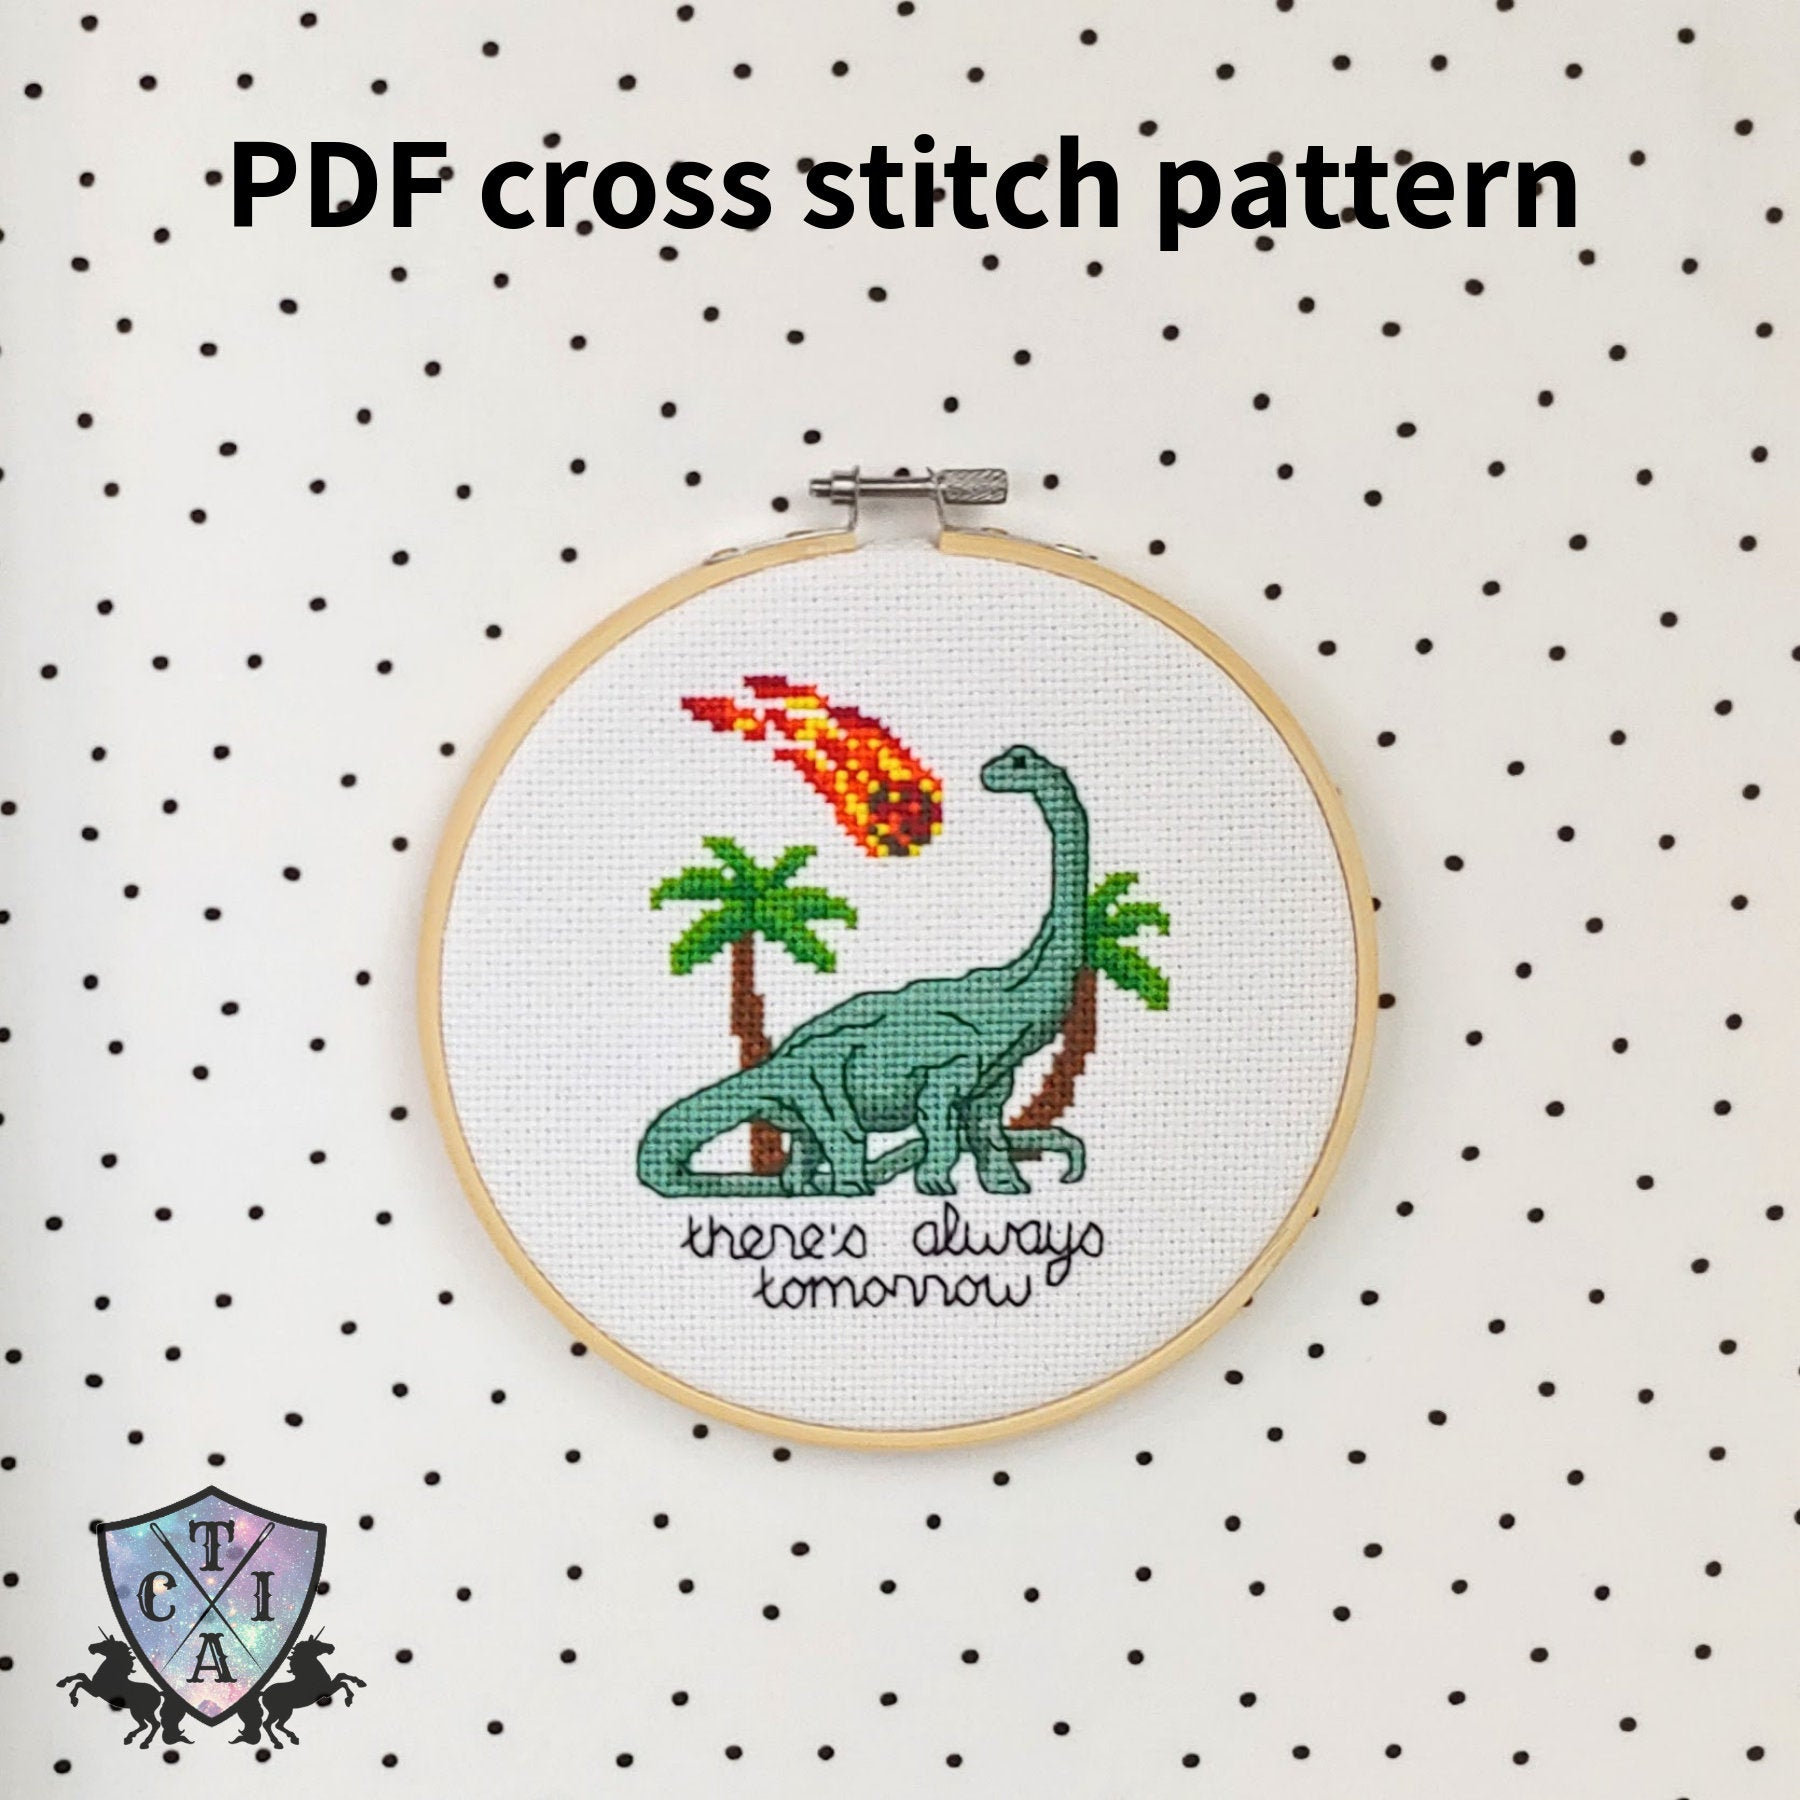 Funny Cross Stitch Pattern, There's Always Tomorrow Dinosaur Embroidery,  Modern Brontosaurus Needlepoint, PDF, Instant Download